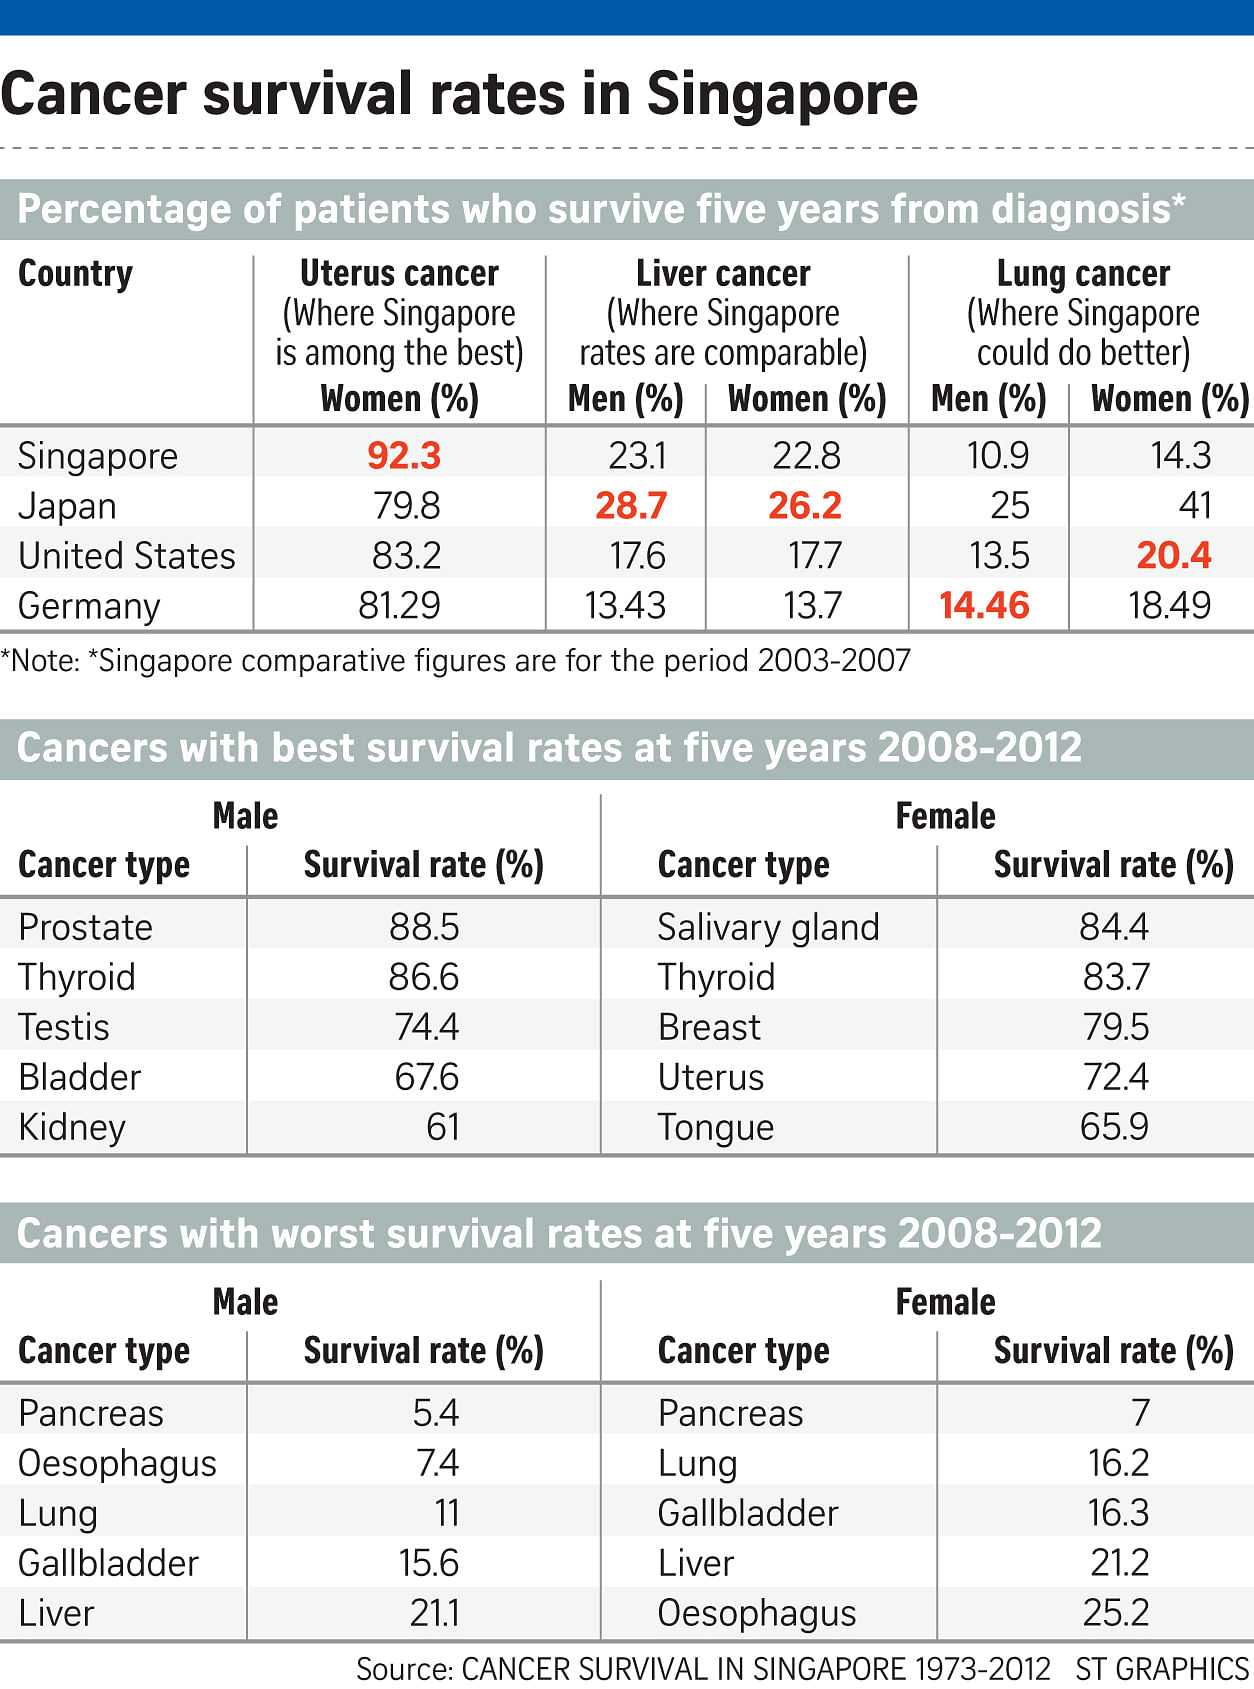 Breast cancer survivial rate will